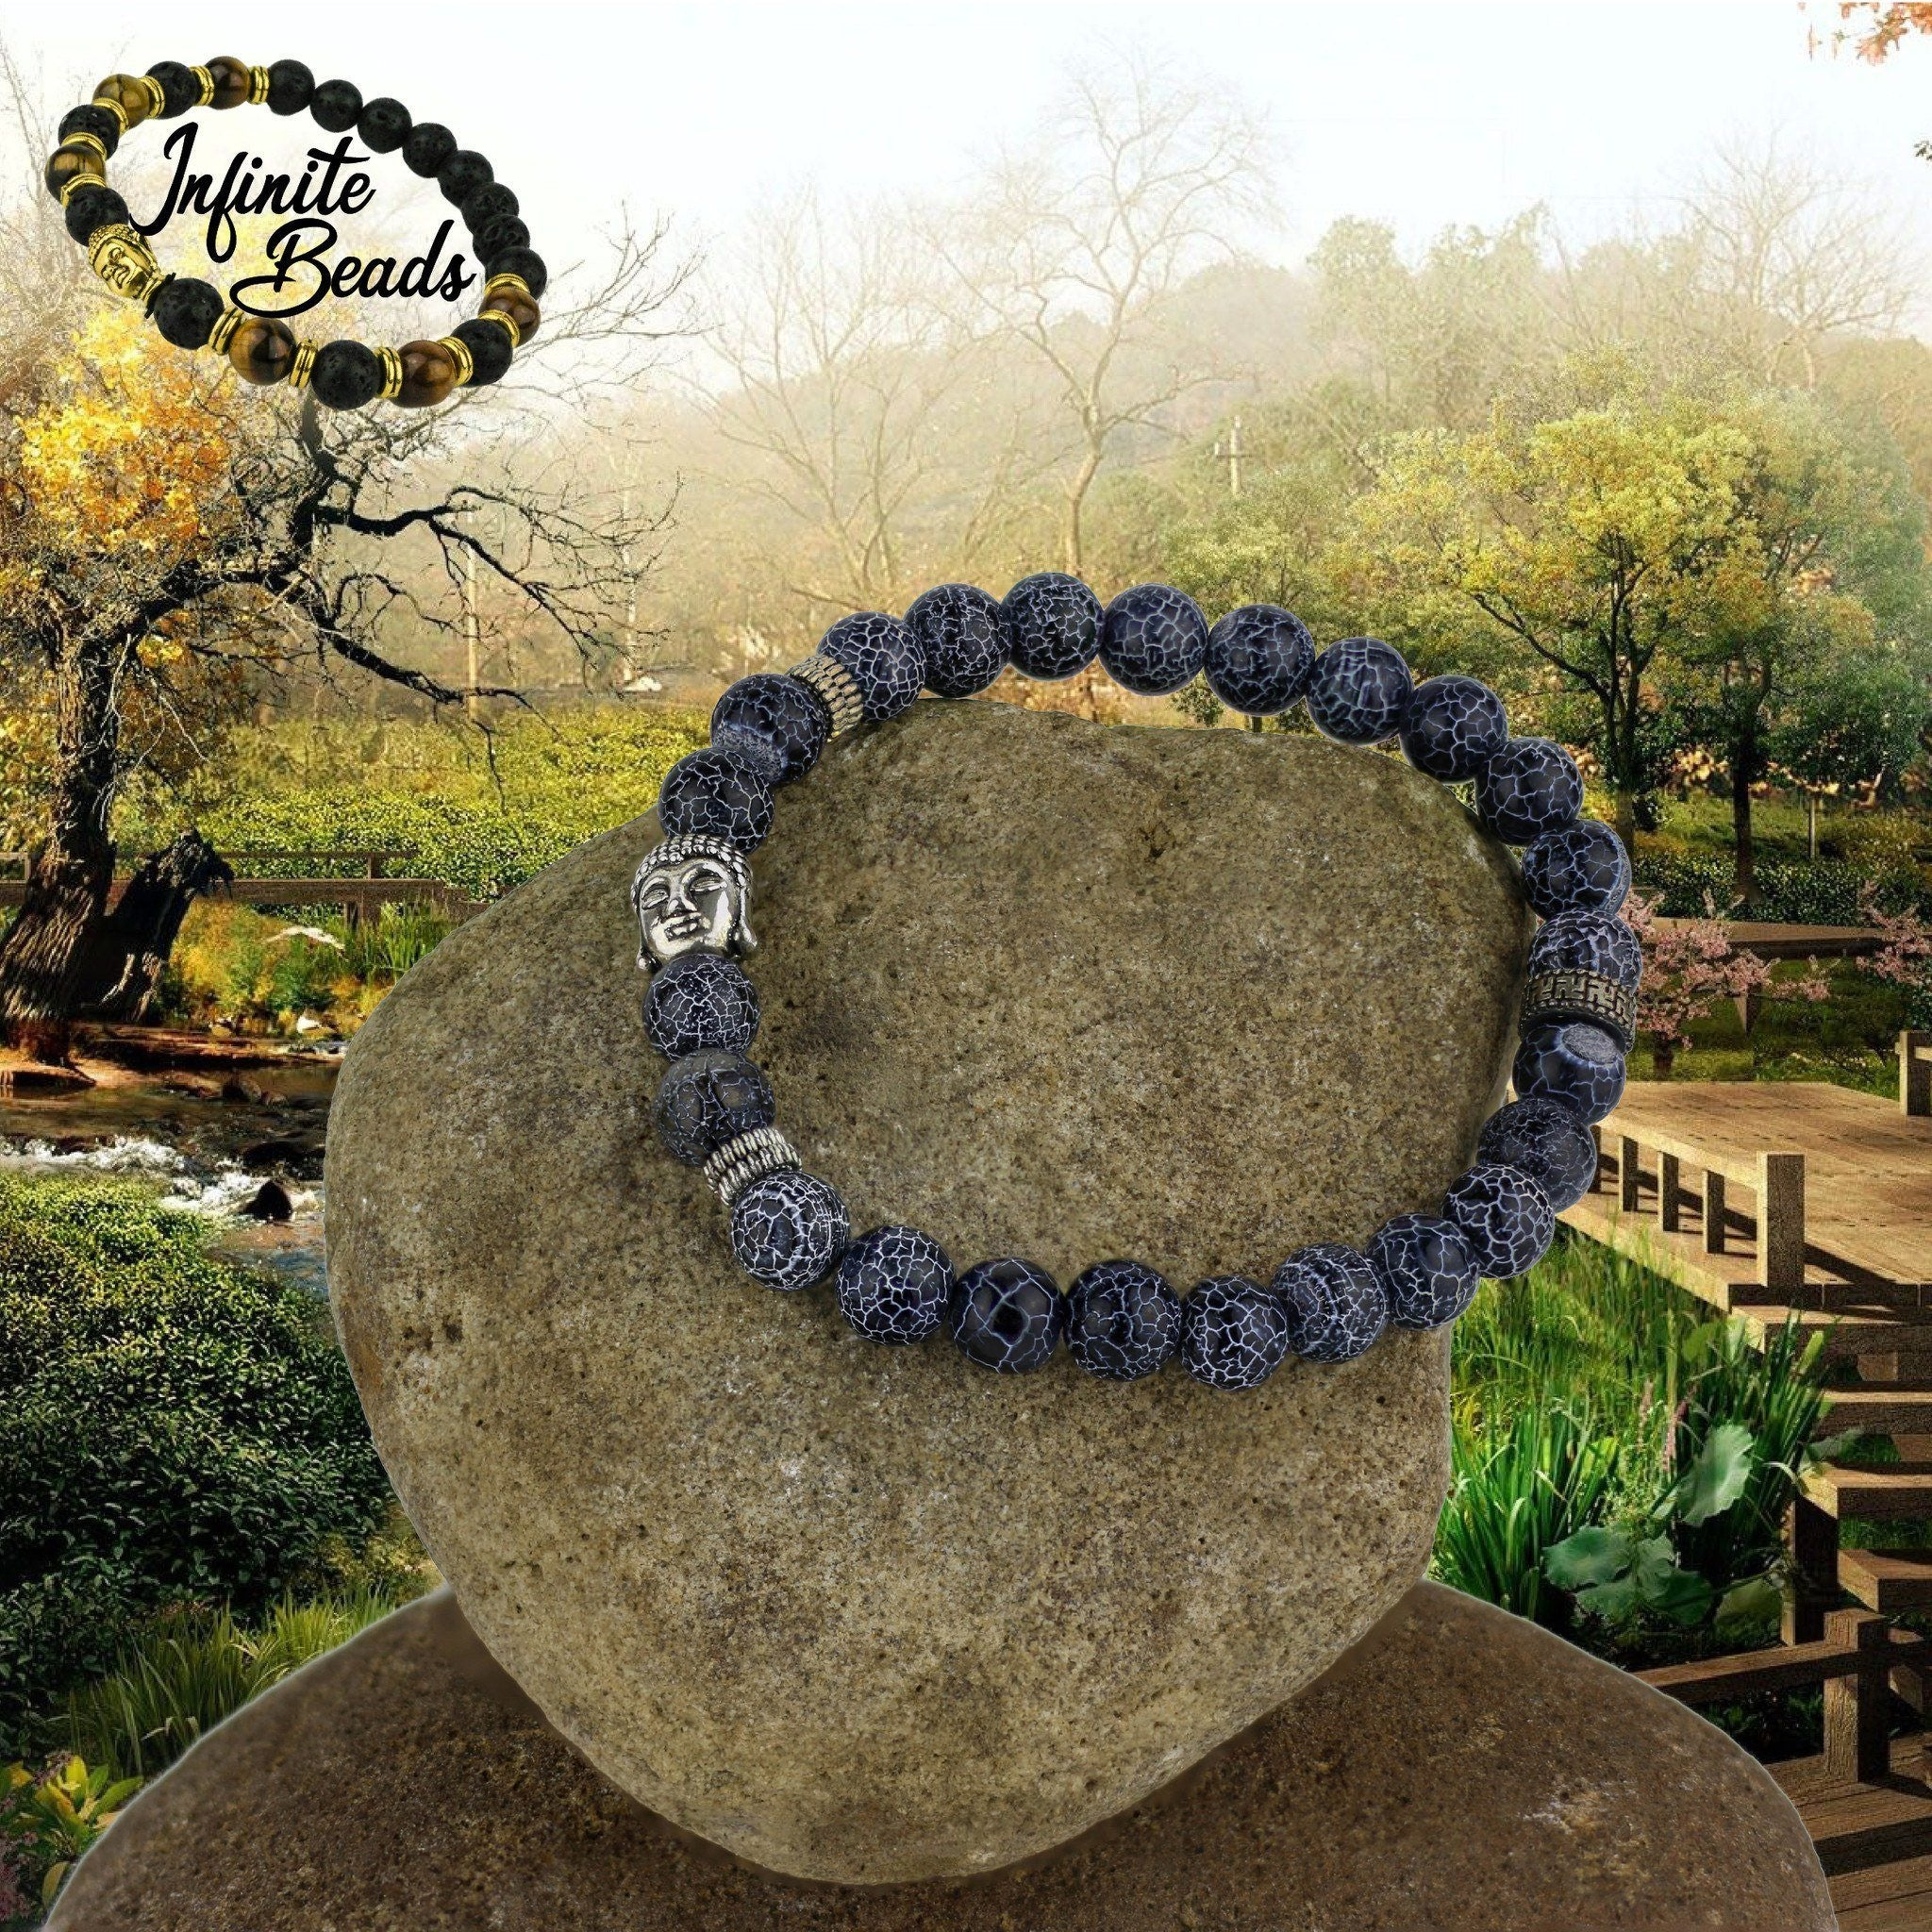 Beads - Weathered Blue Onyx Buddha Wrist Beads